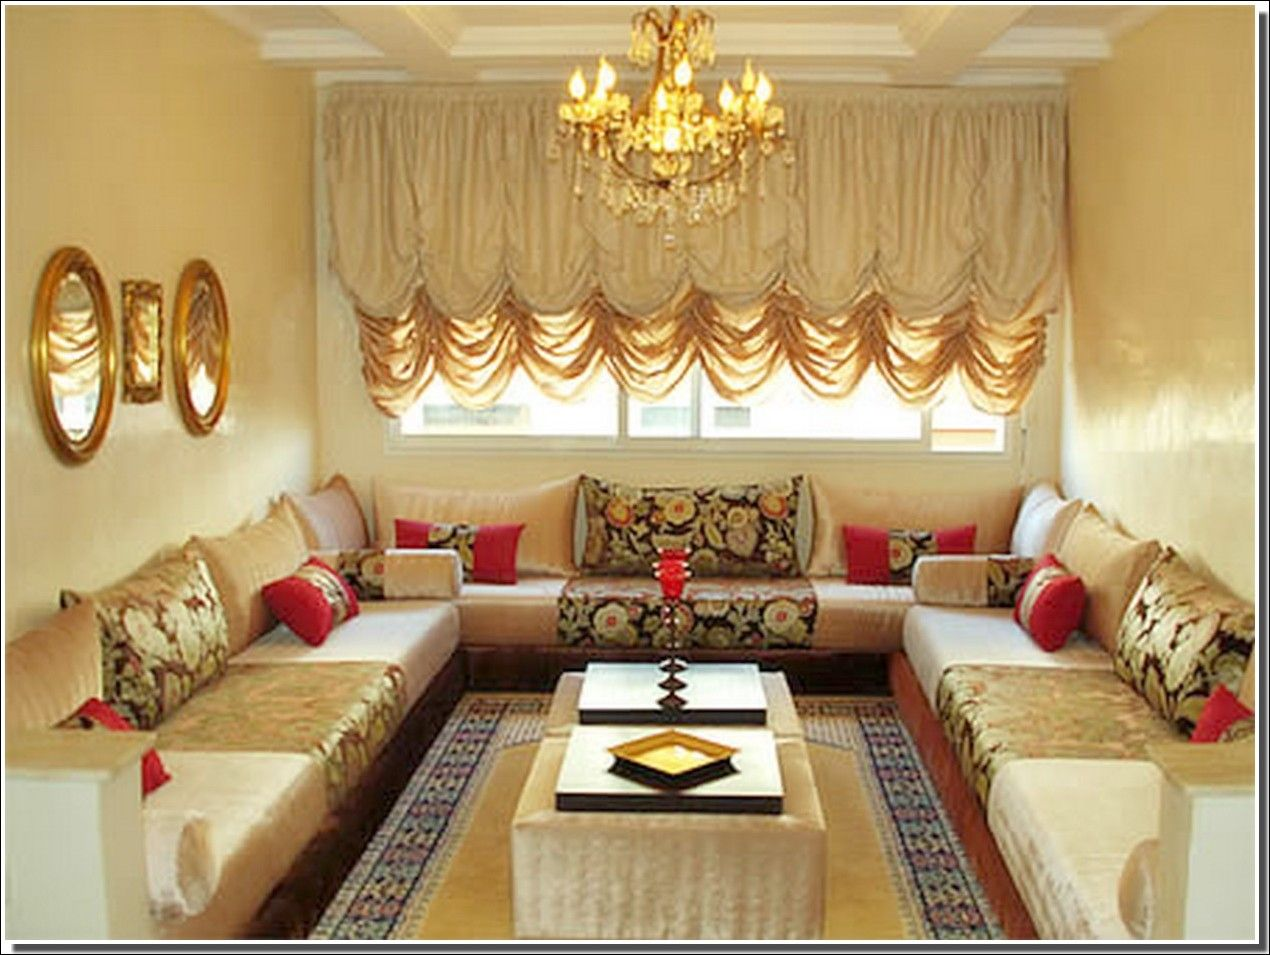 Decoration Salon Turque | Divers | Pinterest | Living Room, Moroccan ...